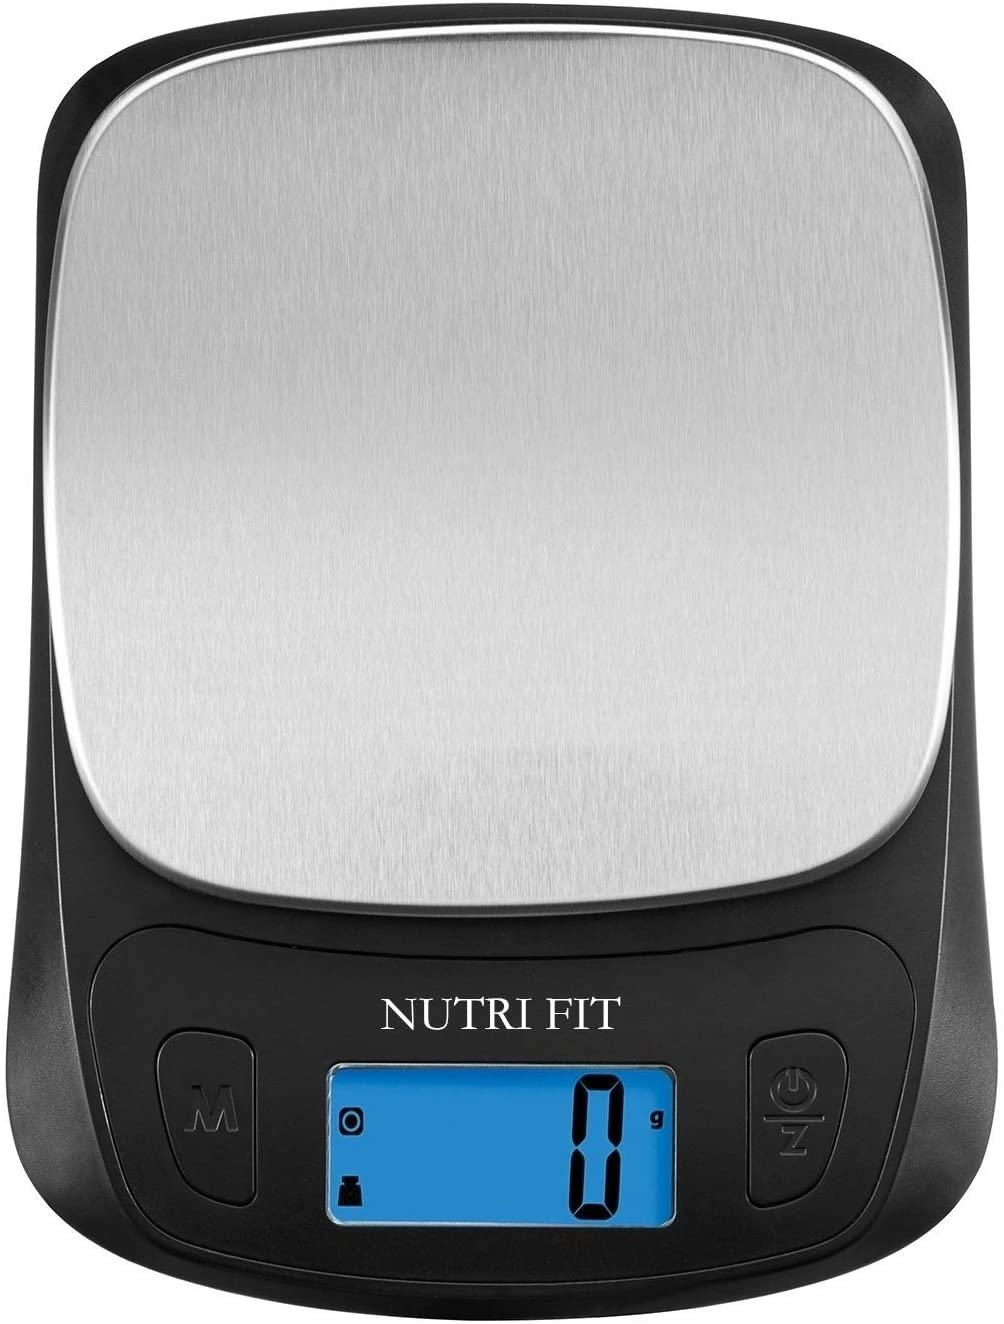 NUTRI FIT Mini Scale Digital Food Weight Scale in Kitchen for Cooking Dieting Tare & Backlit LCD Display Weights in Grams and Ounces,Black